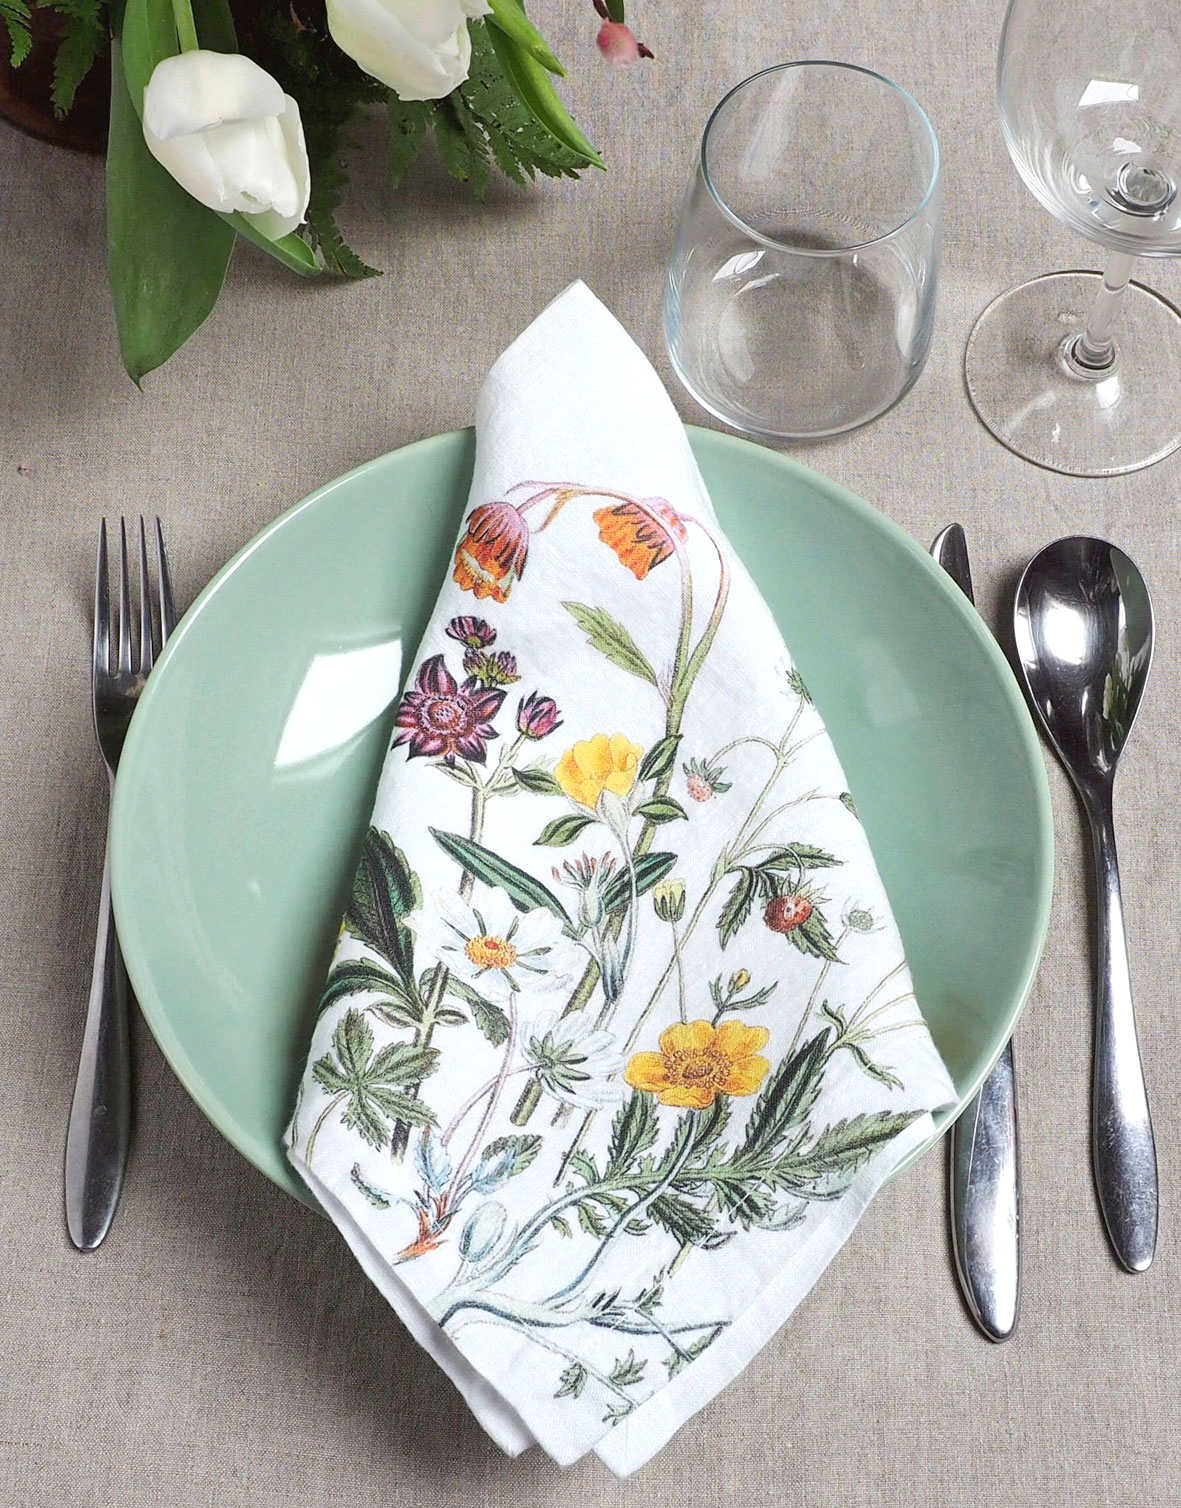 Wild Flowers linen cloth napkins from Linoroom